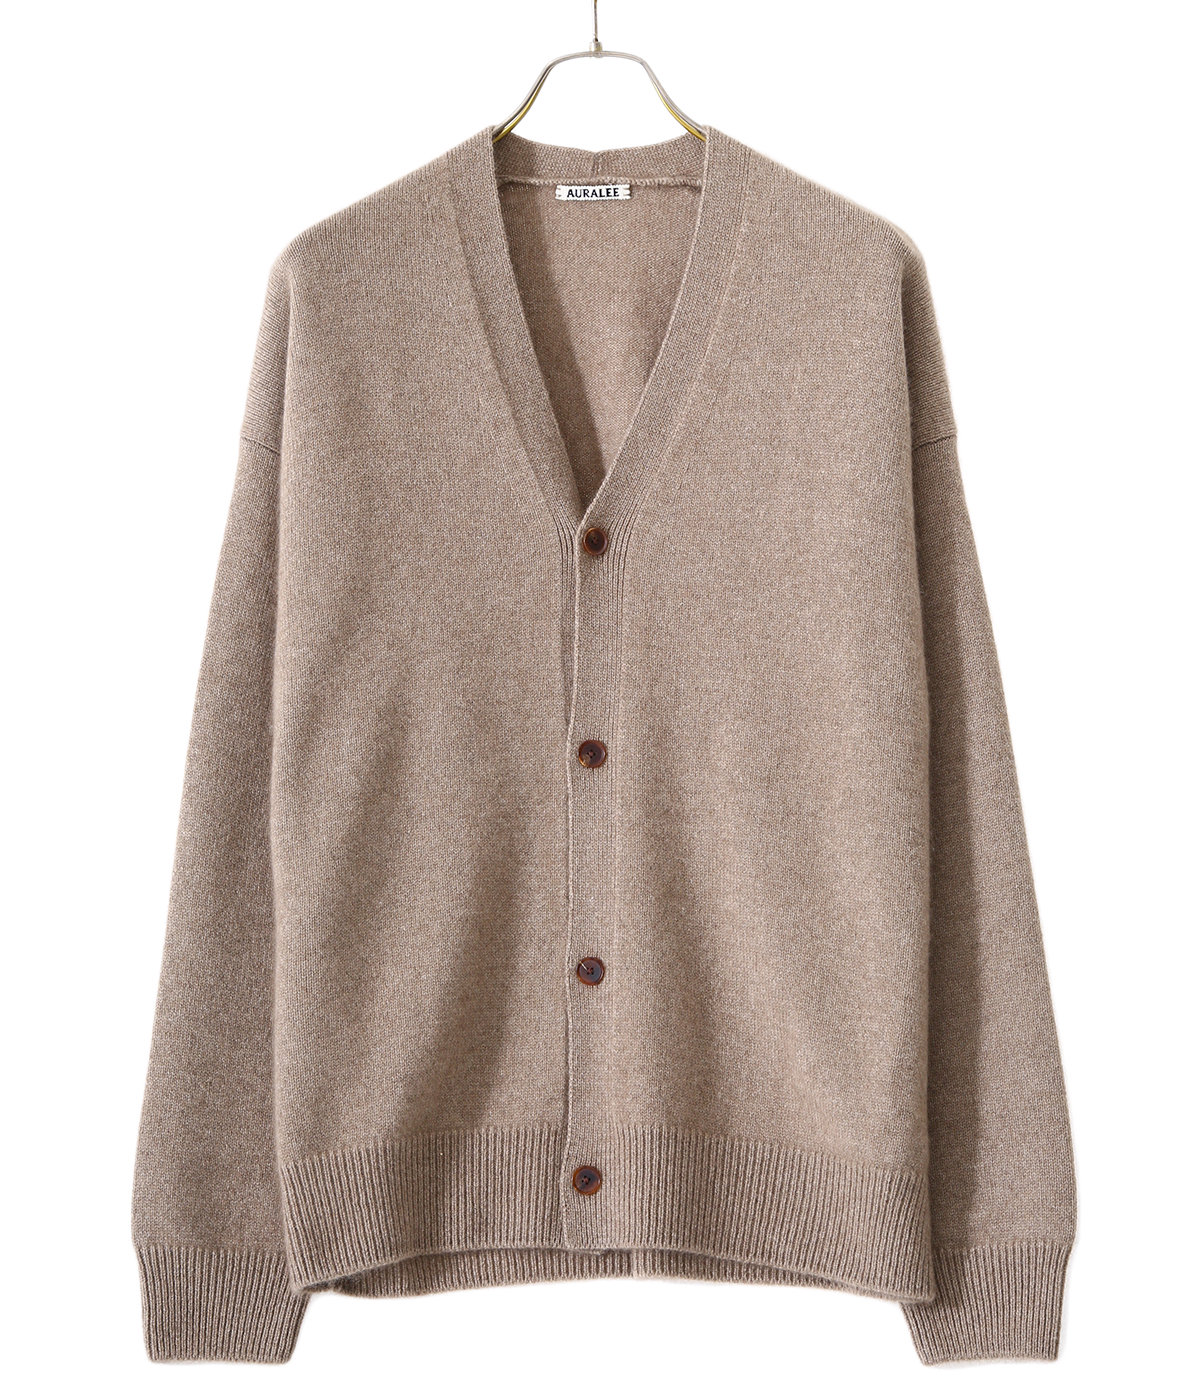 BABY CASHMERE KNIT CARDIGAN